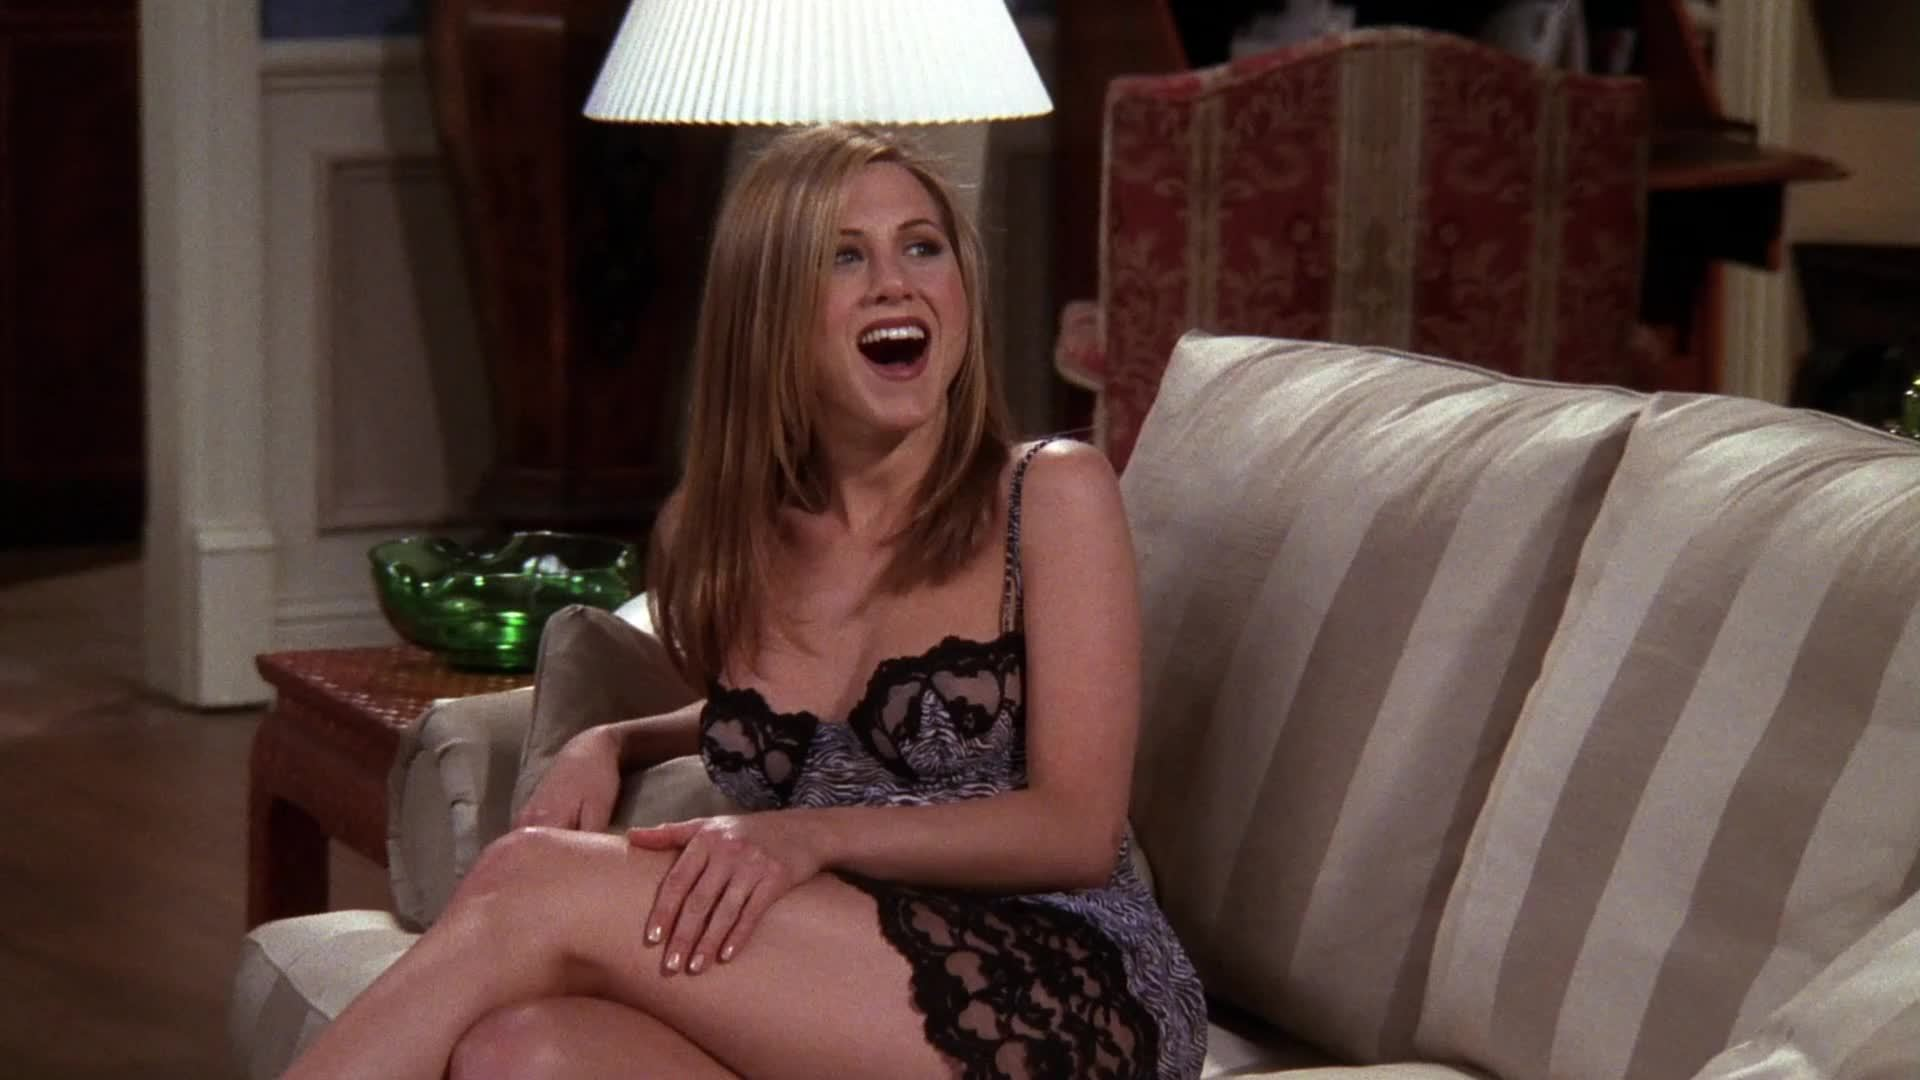 celebgfys, celebritylegs, jennifer aniston, sexyceleb, Jennifer Aniston 03 GIFs